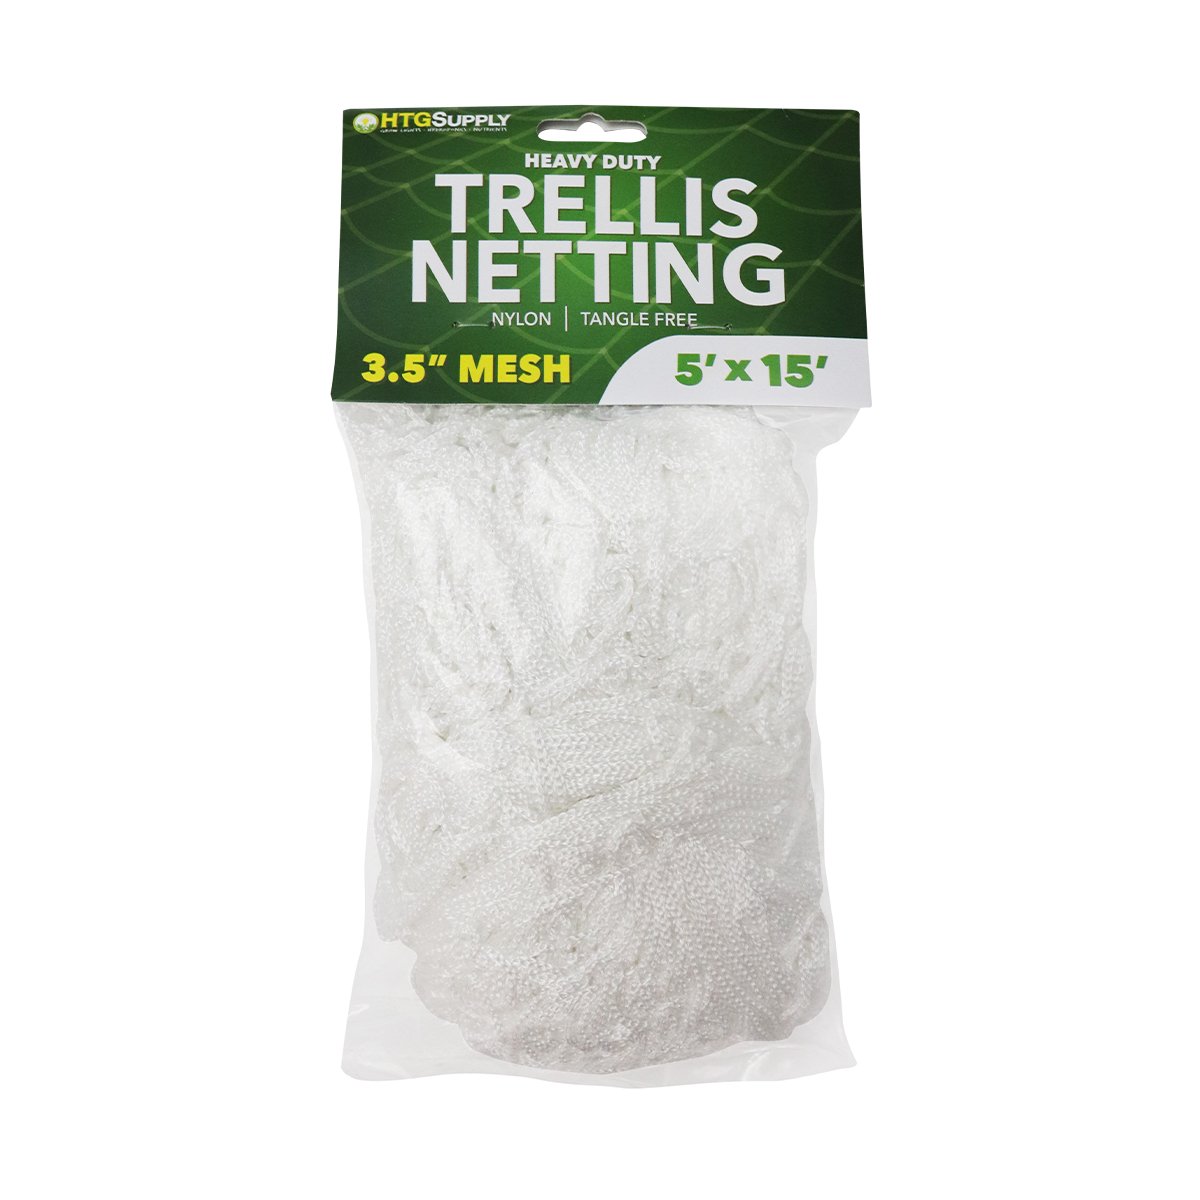 HTG Supply Trellis Netting – 3.5 Inch Mesh